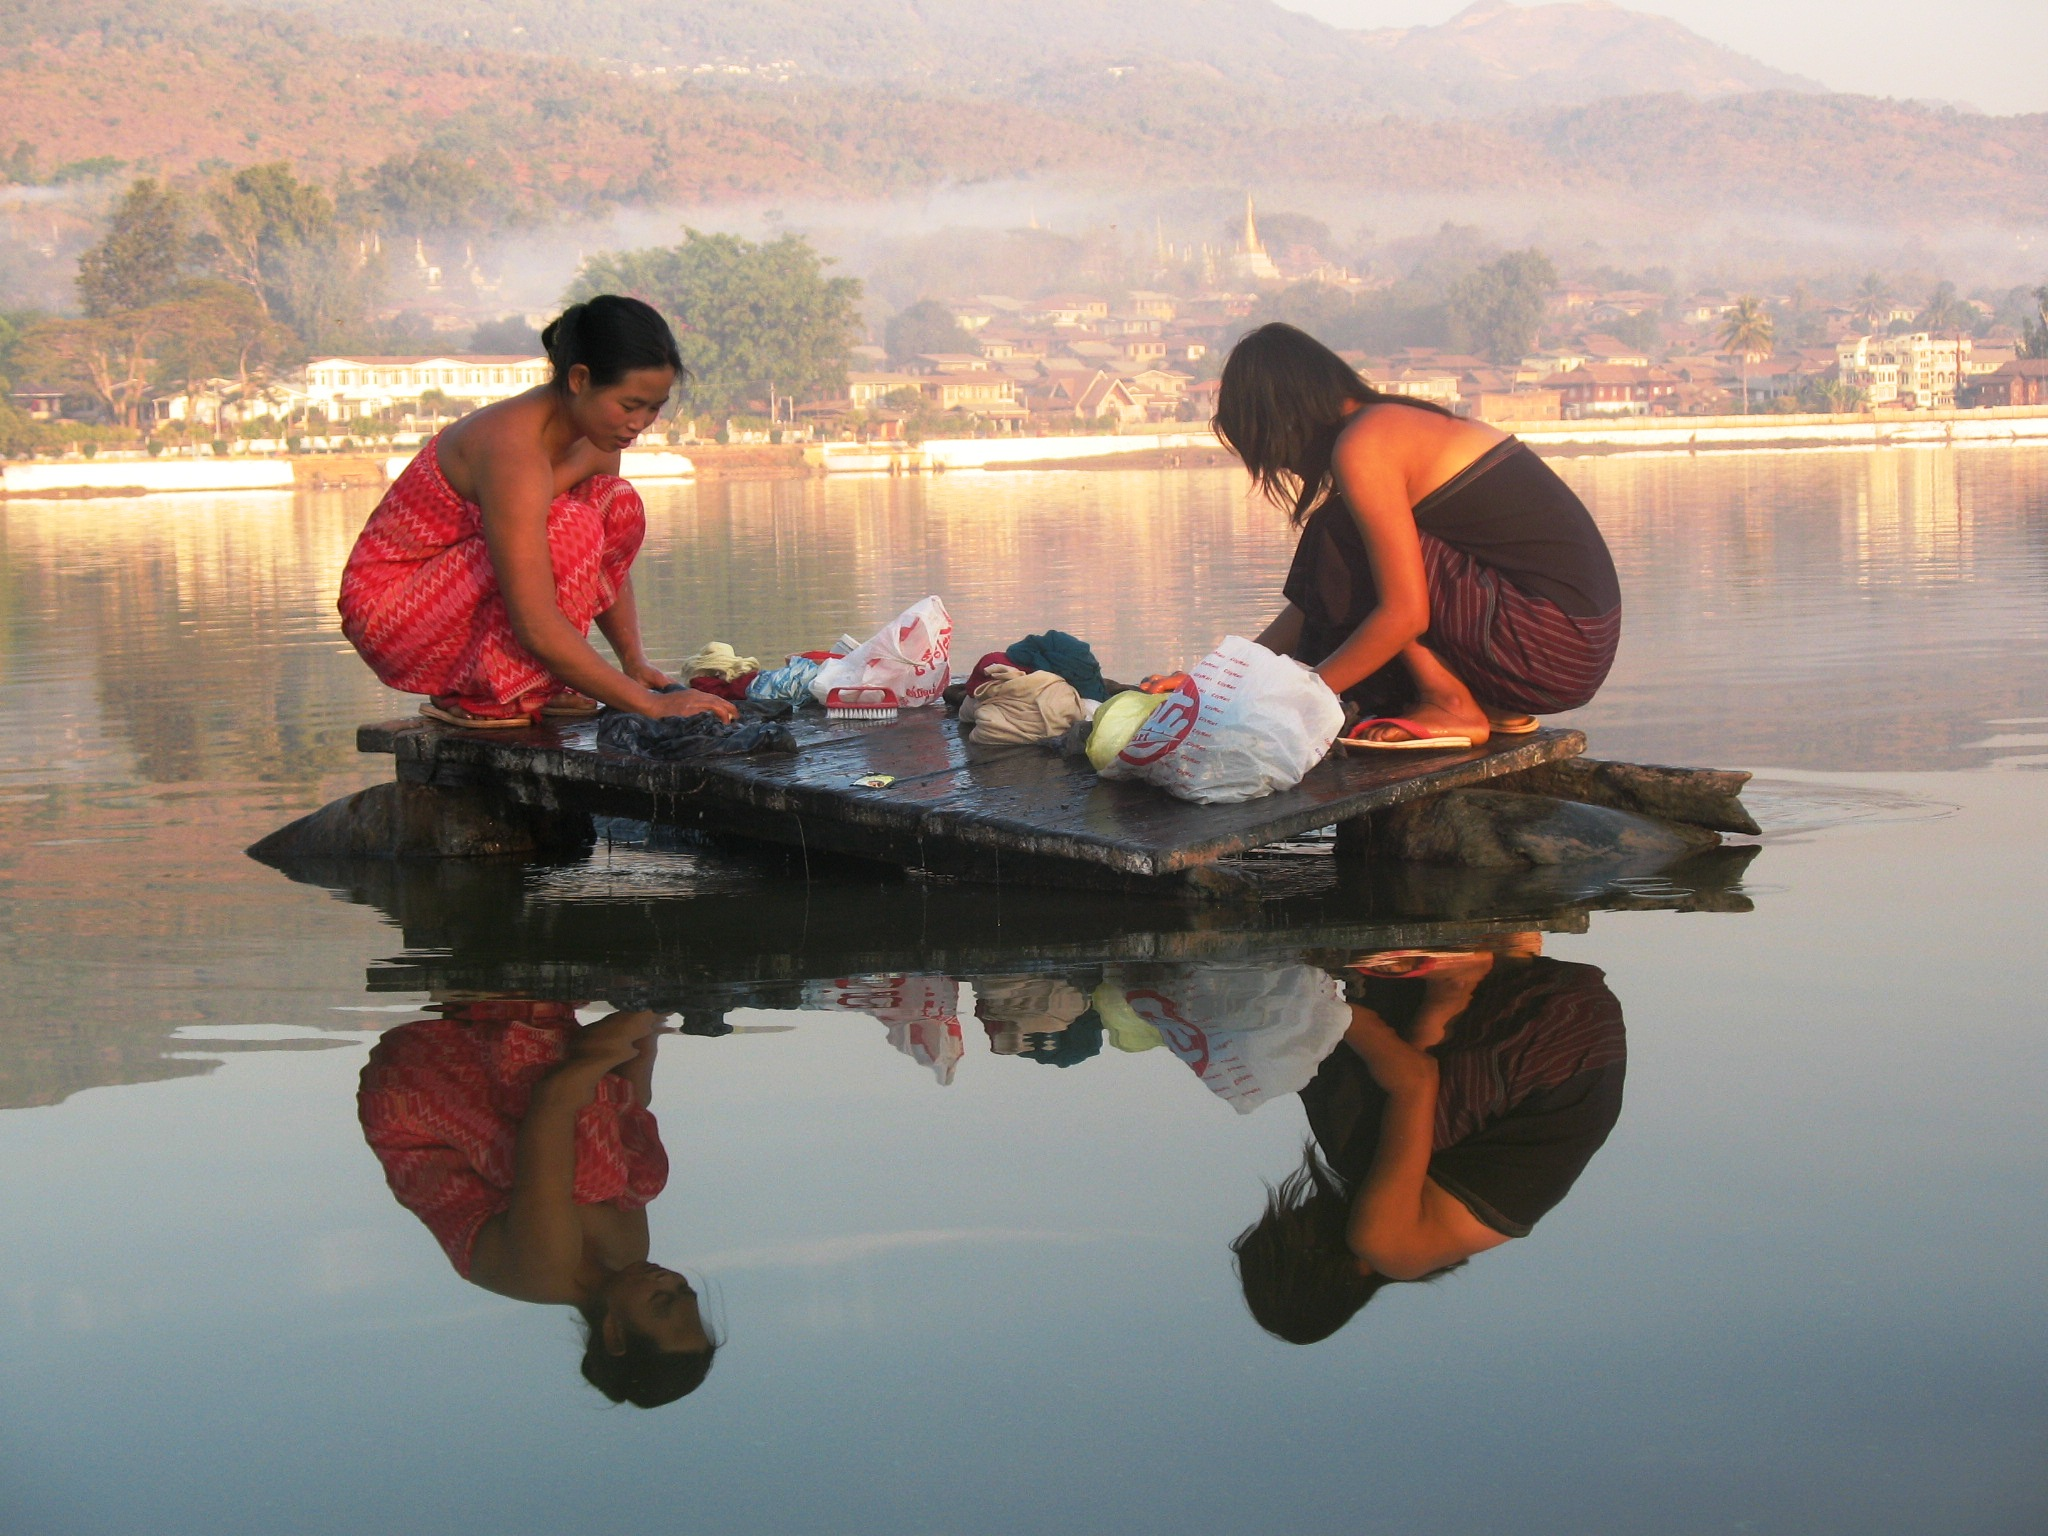 File:Burmese girls laundring in the lake435.jpg - Wikimedia Commons